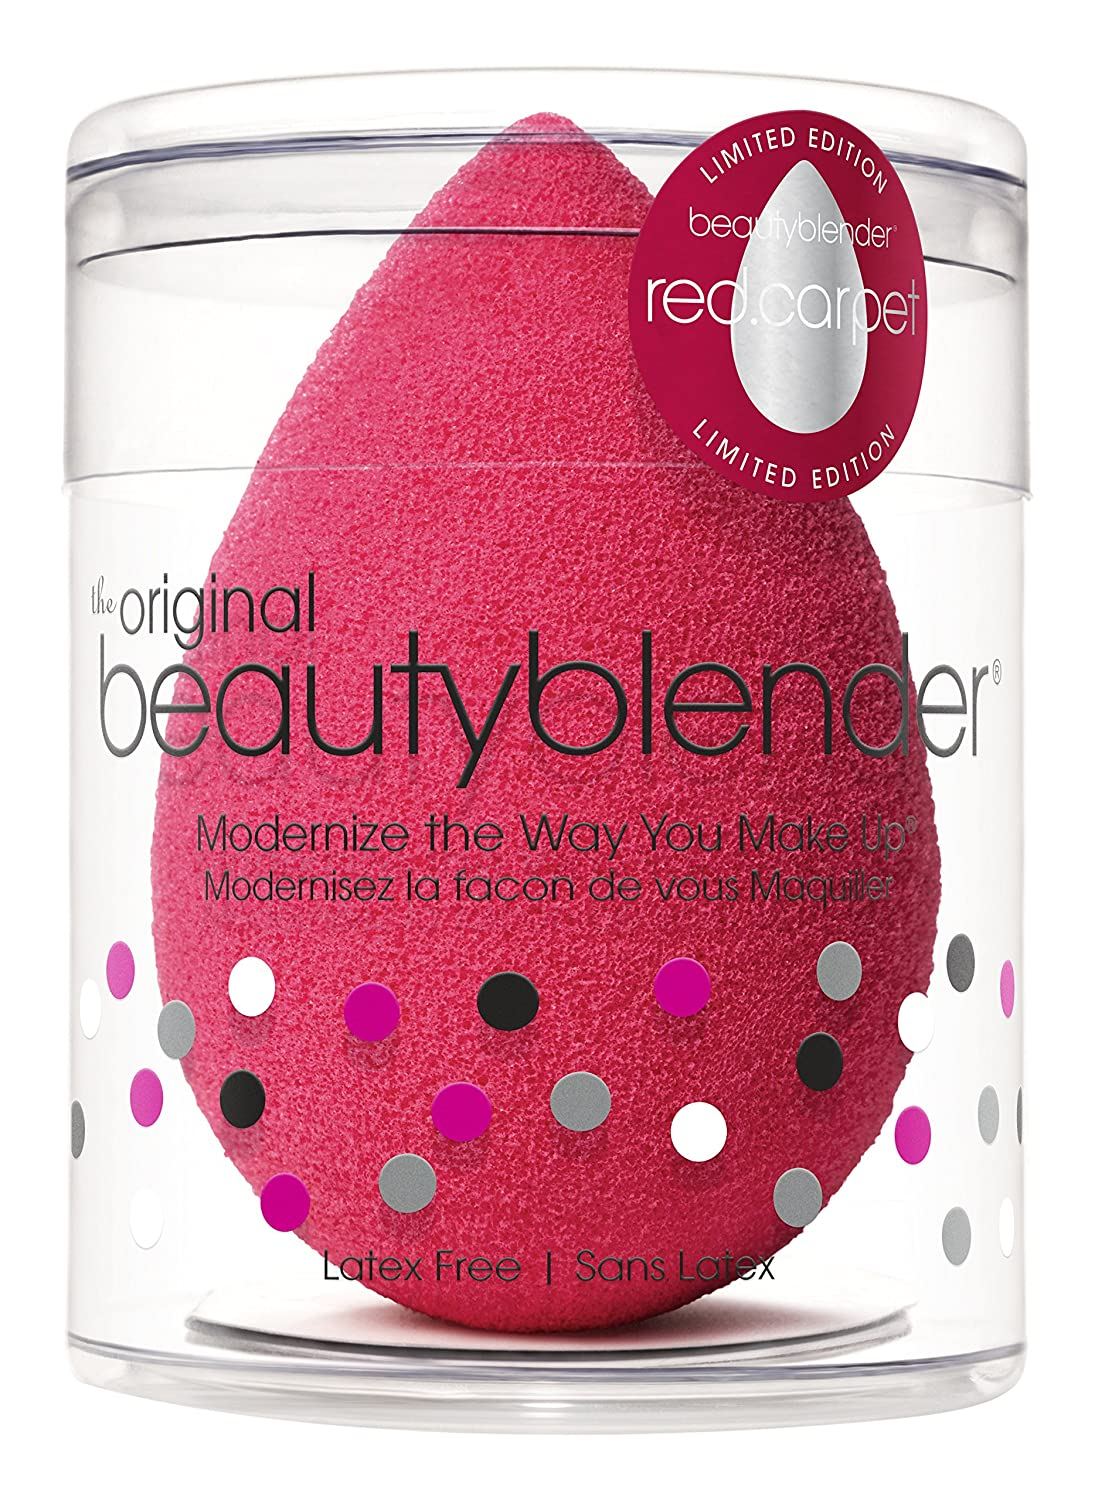 beautyblender chill: Makeup Sponge For Foundations, Powders & Creams